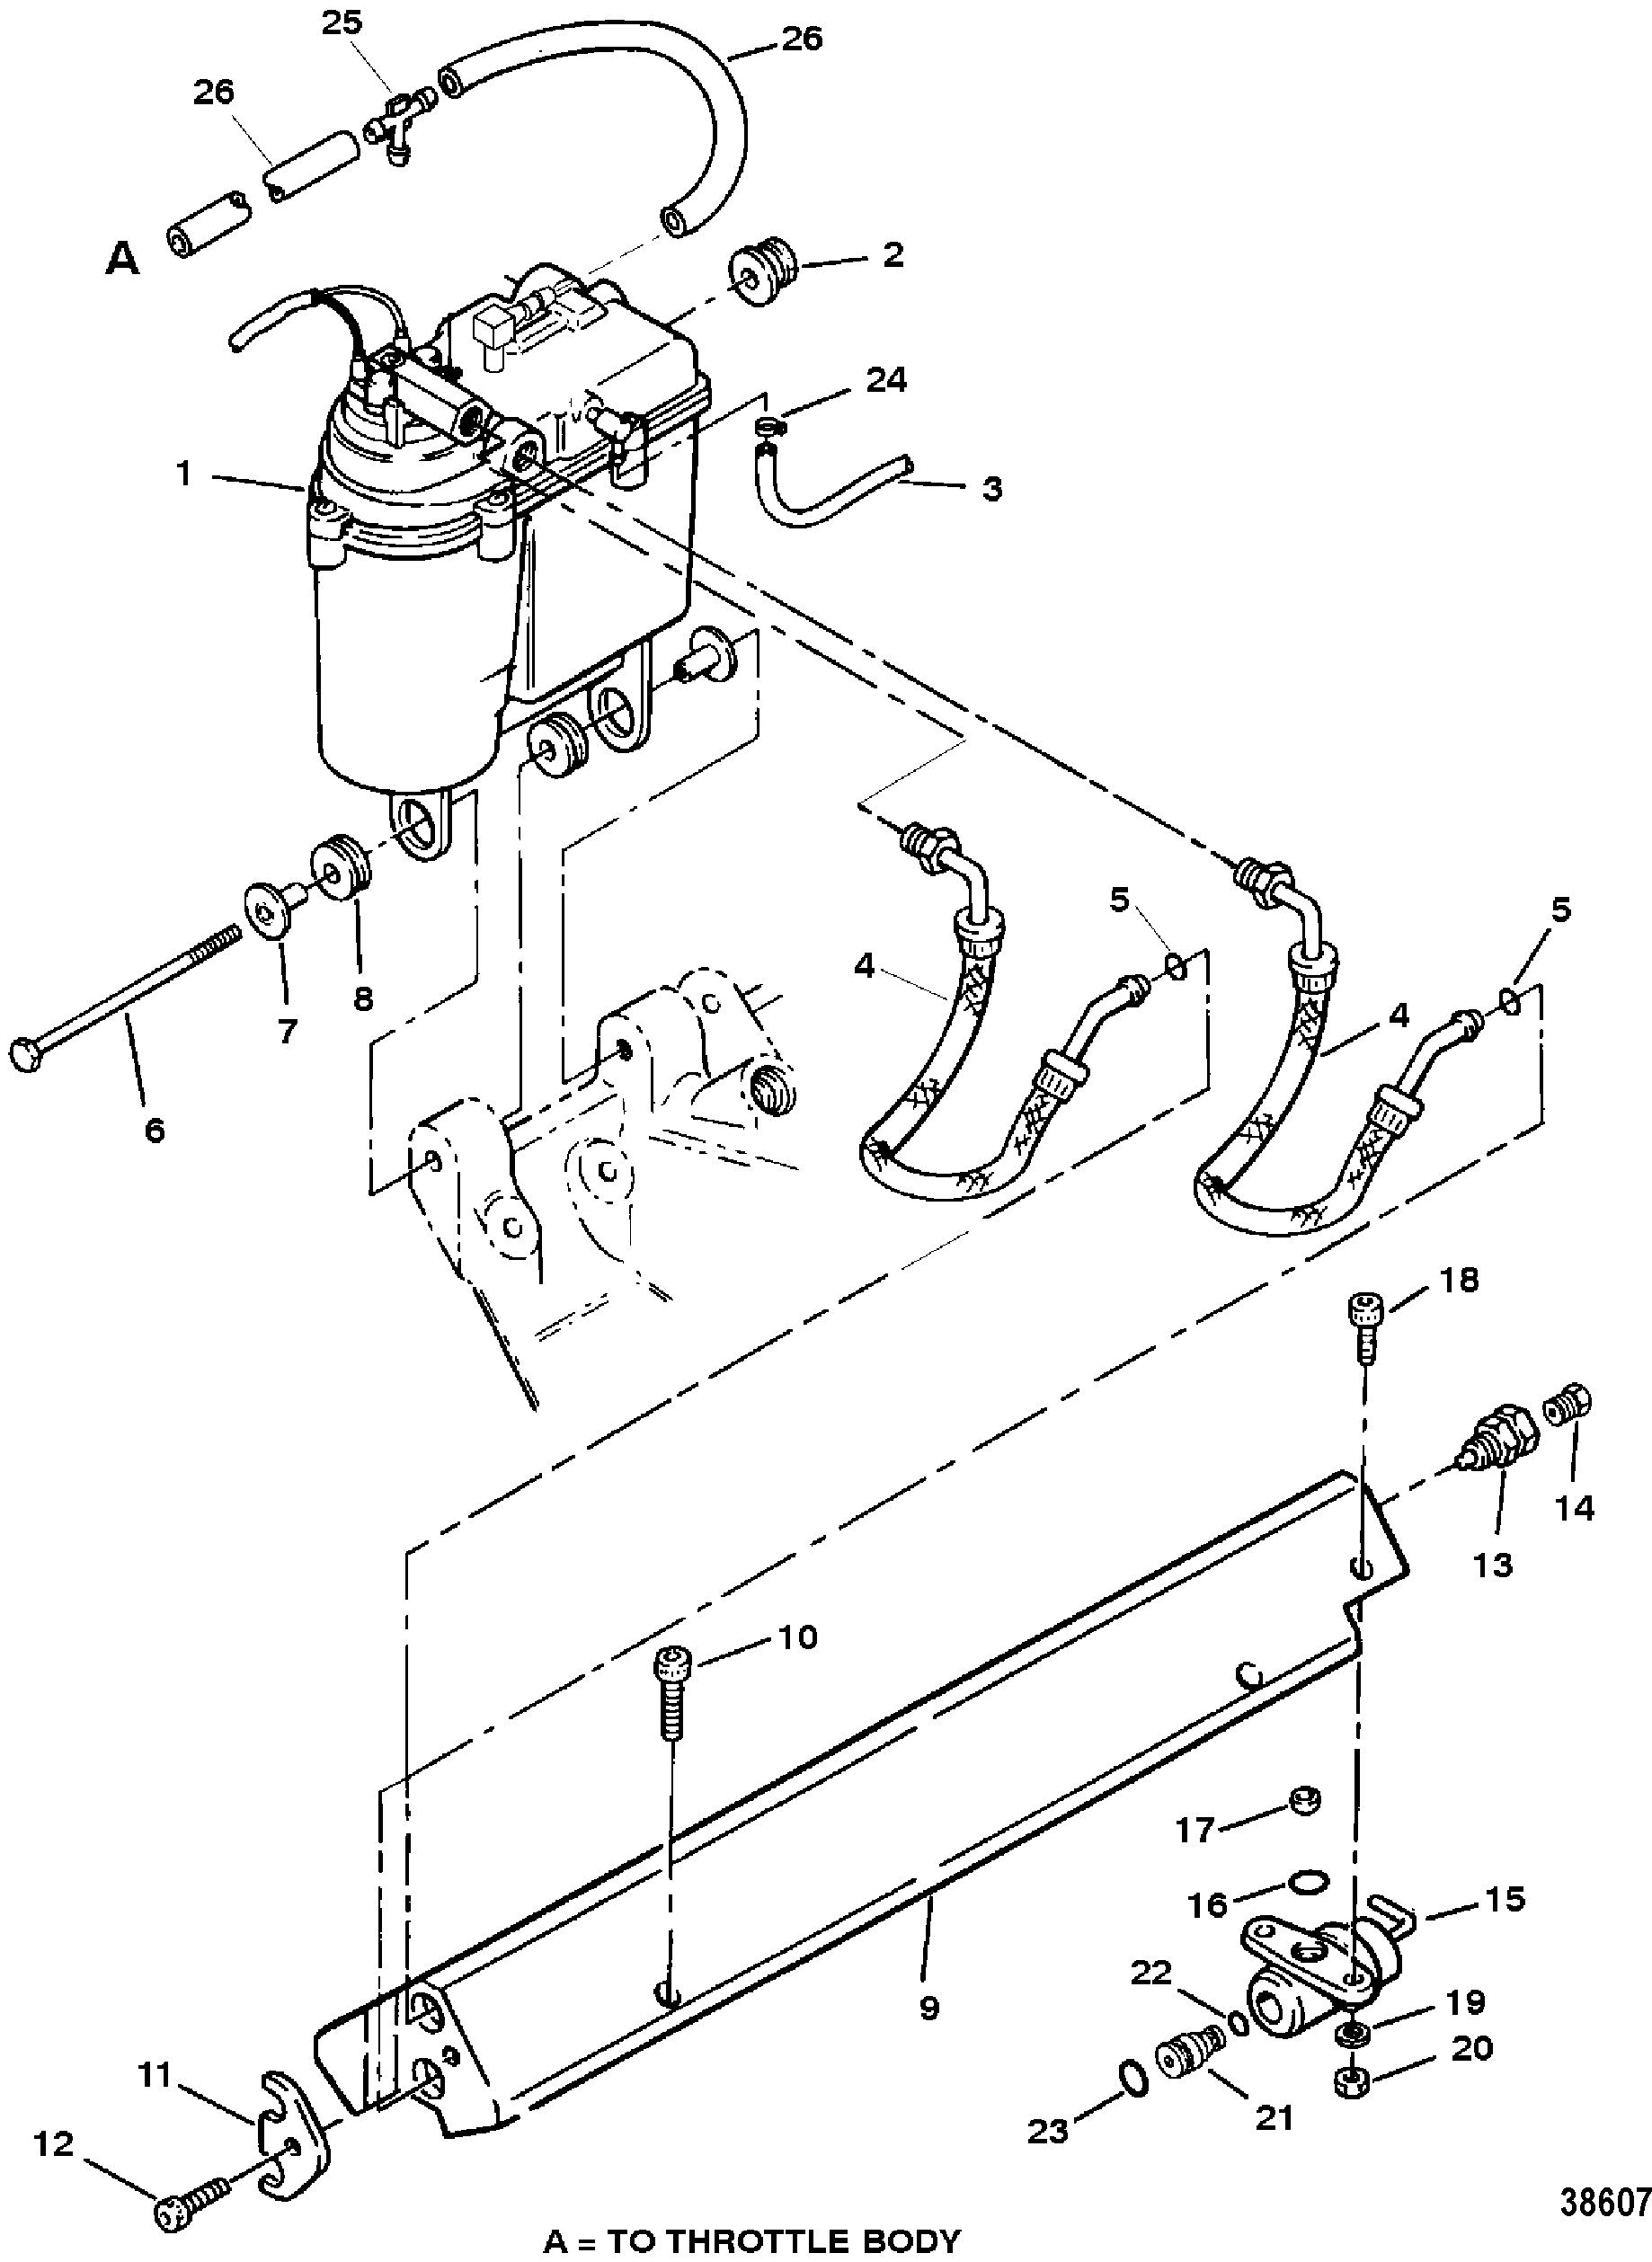 Mercury Outboard Motor Lower Unit Diagram also Mercury Mariner Outboard Cooling System likewise OMC 206 8hp furthermore 483151866245656160 also 1999. on mercury water pump replacement